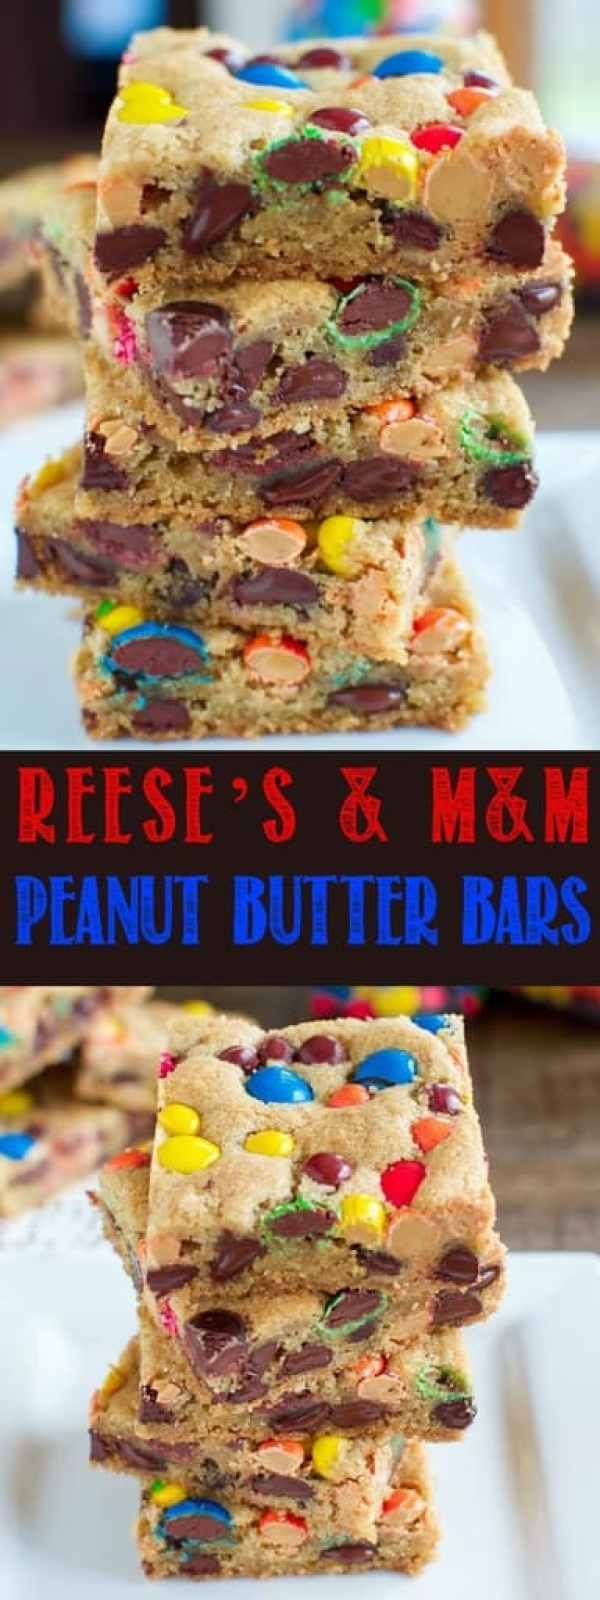 These chewy Reese's and M&M Chocolate Chip Bars are even better than your favorite bakery cookie and they are quick and easy to make! Everyone loves them!